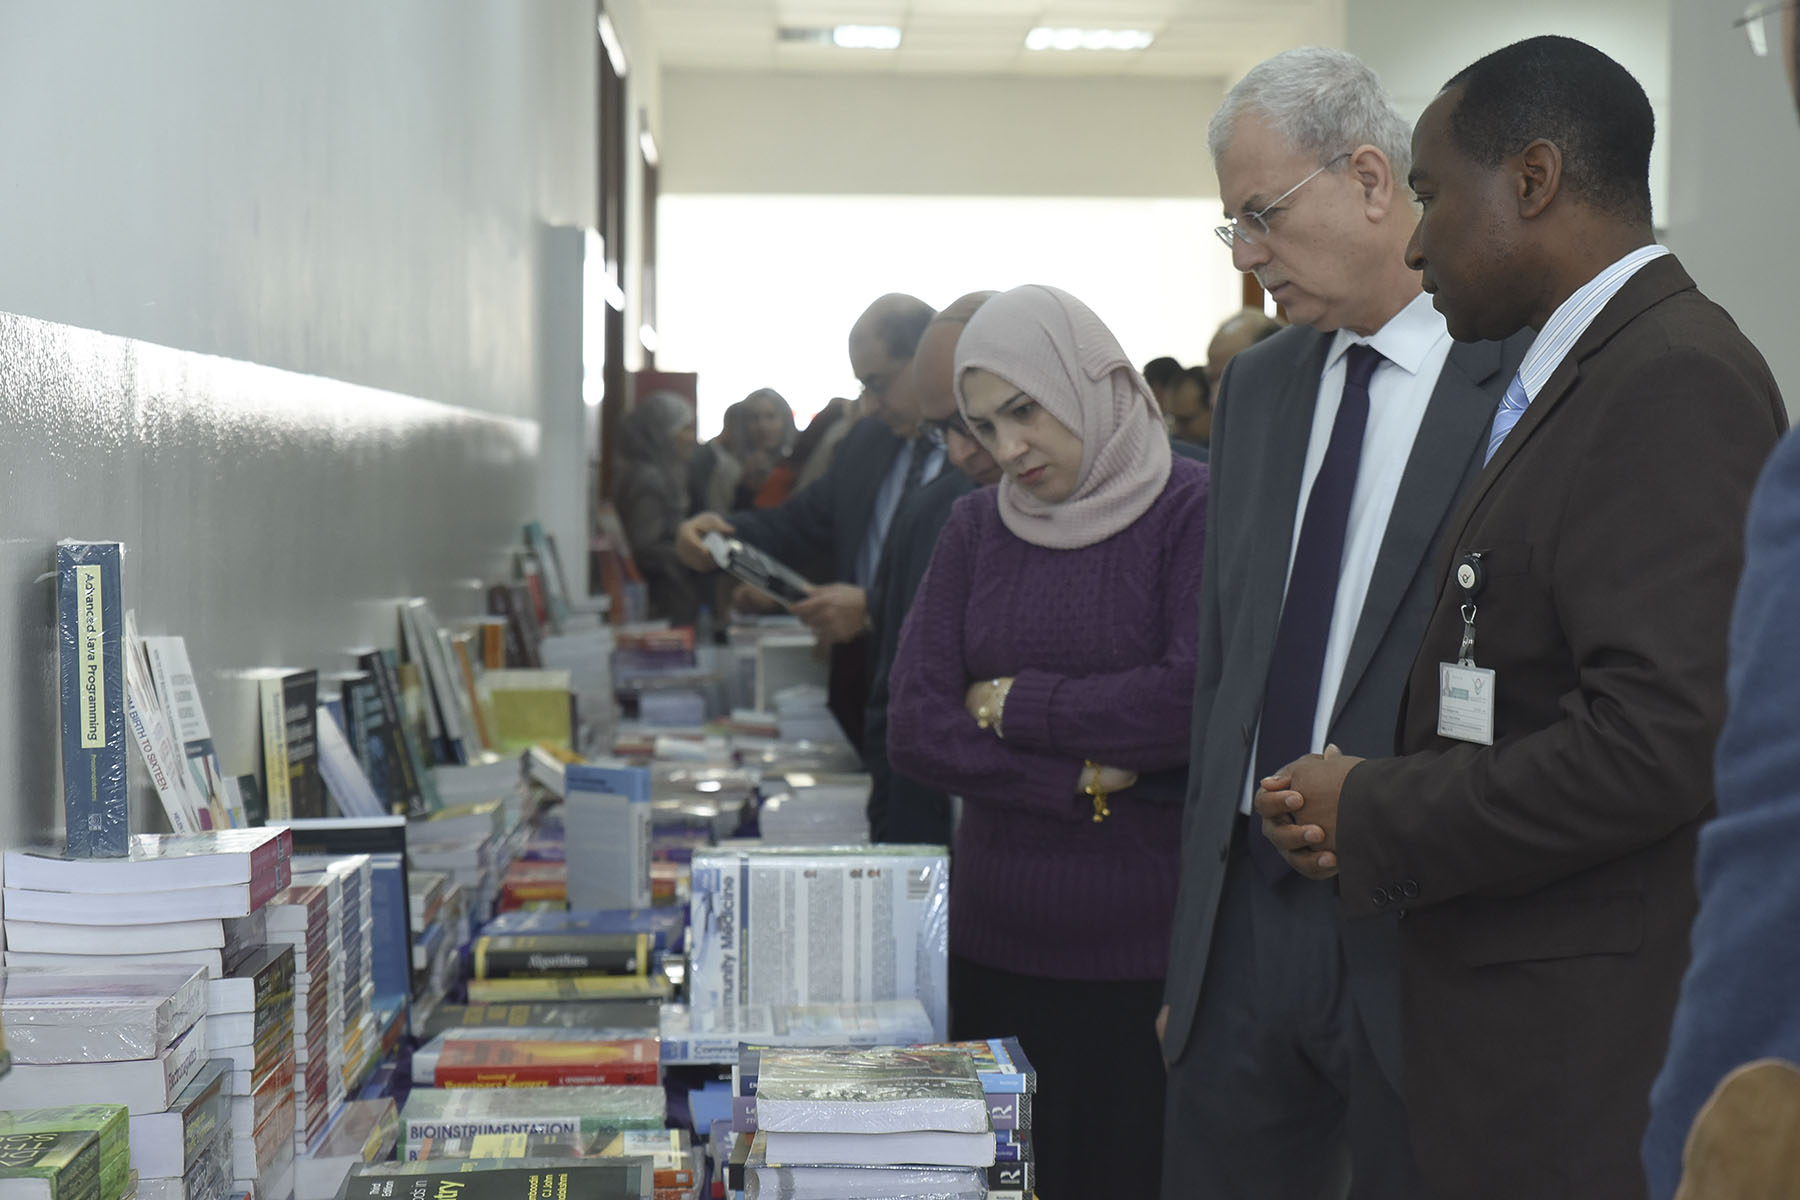 Book Fair 2019 - Al Ain University of Science and Technology